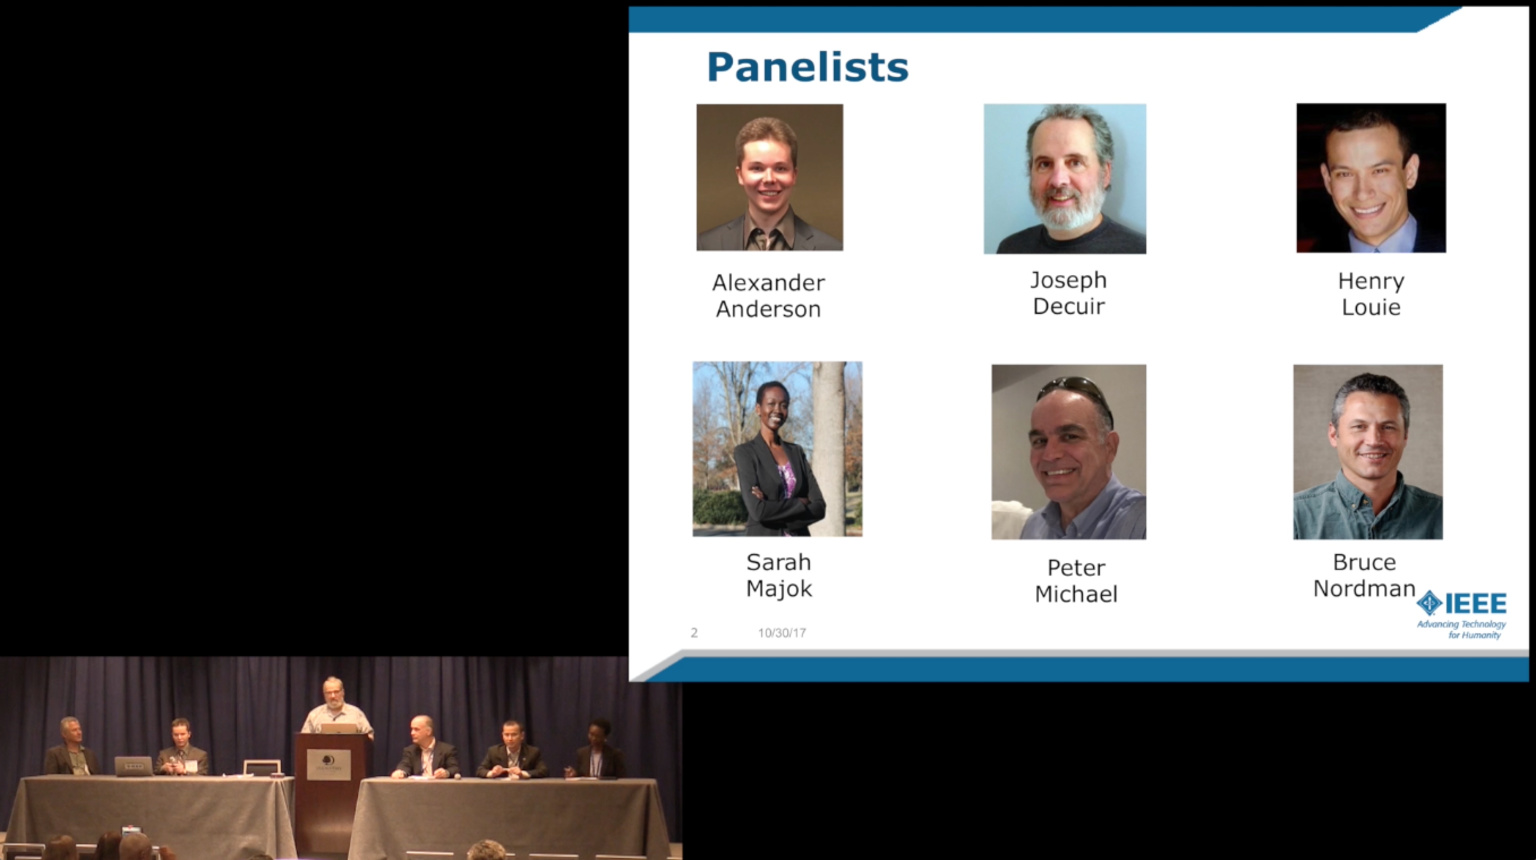 Energy Panel at the Global Humanitarian Technology Conference, GHTC 2017